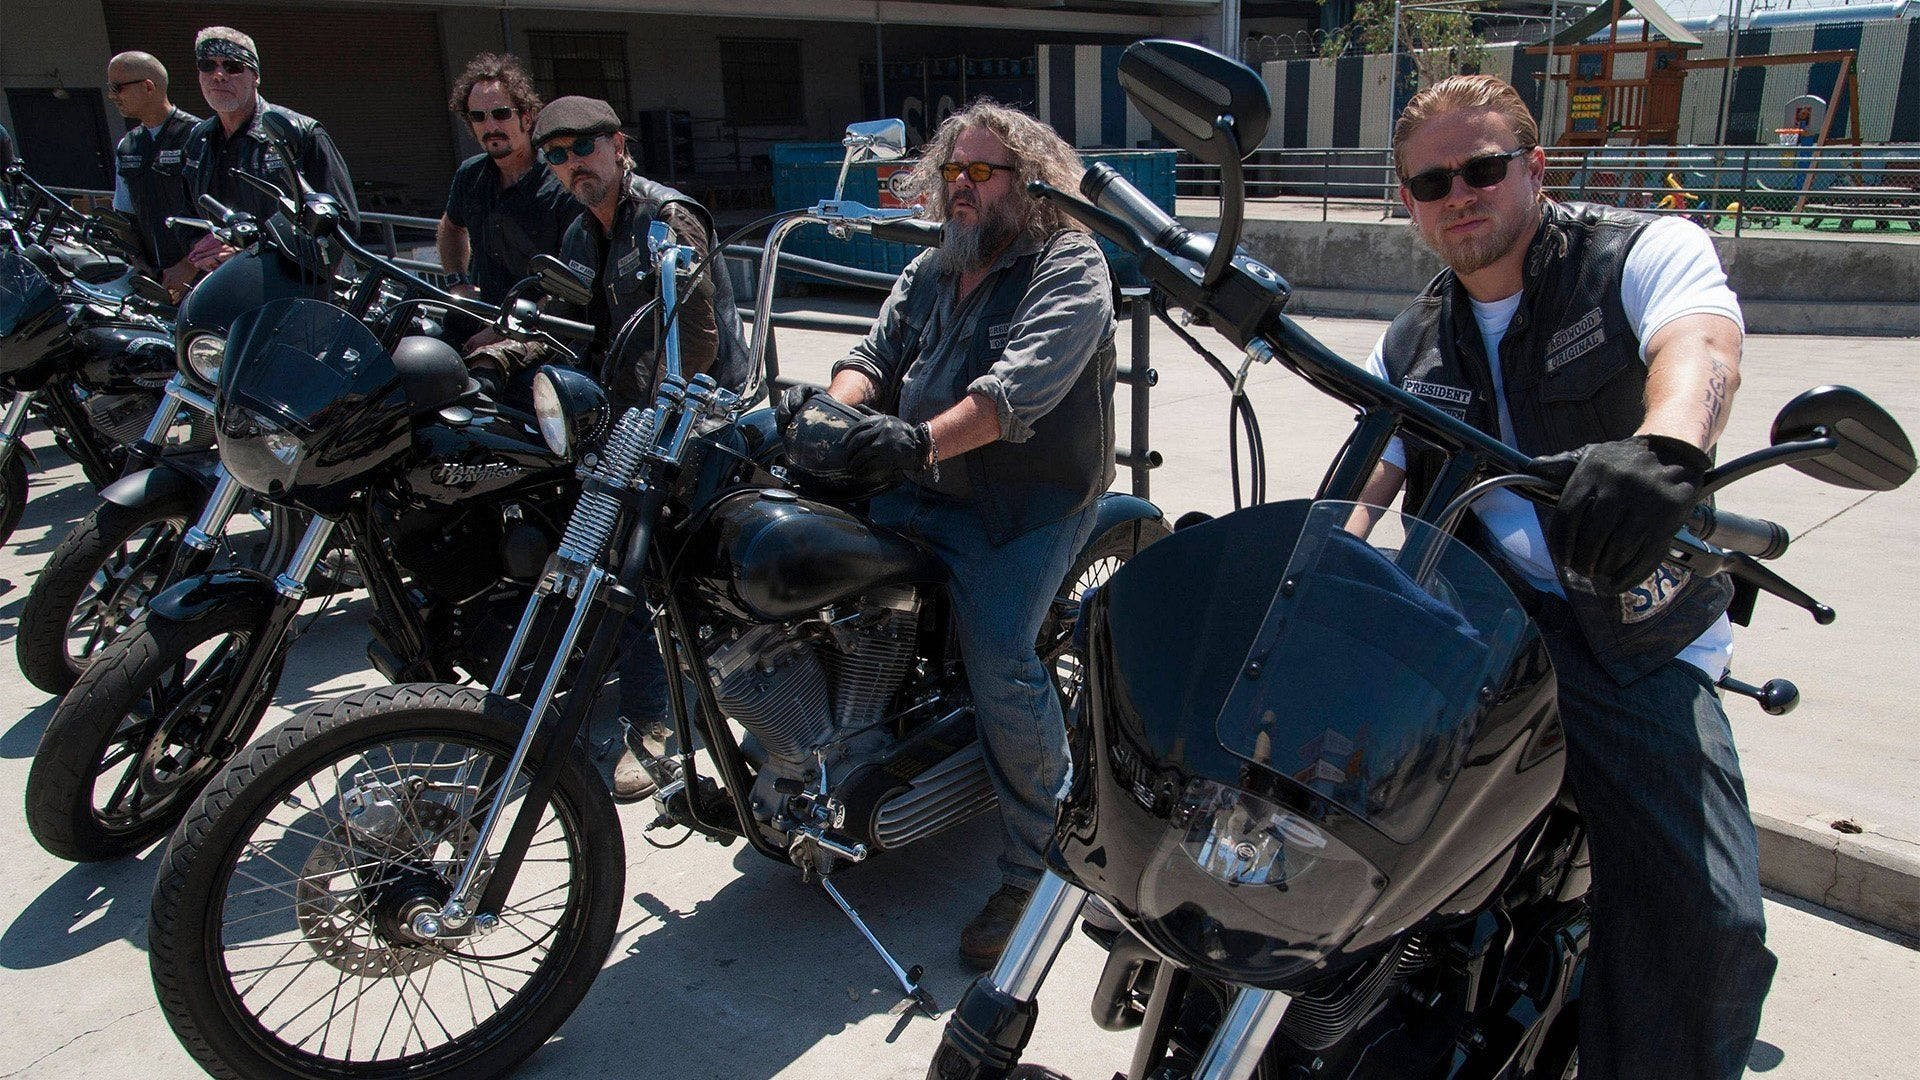 Some of the sons of anarchy cast on motorcycles